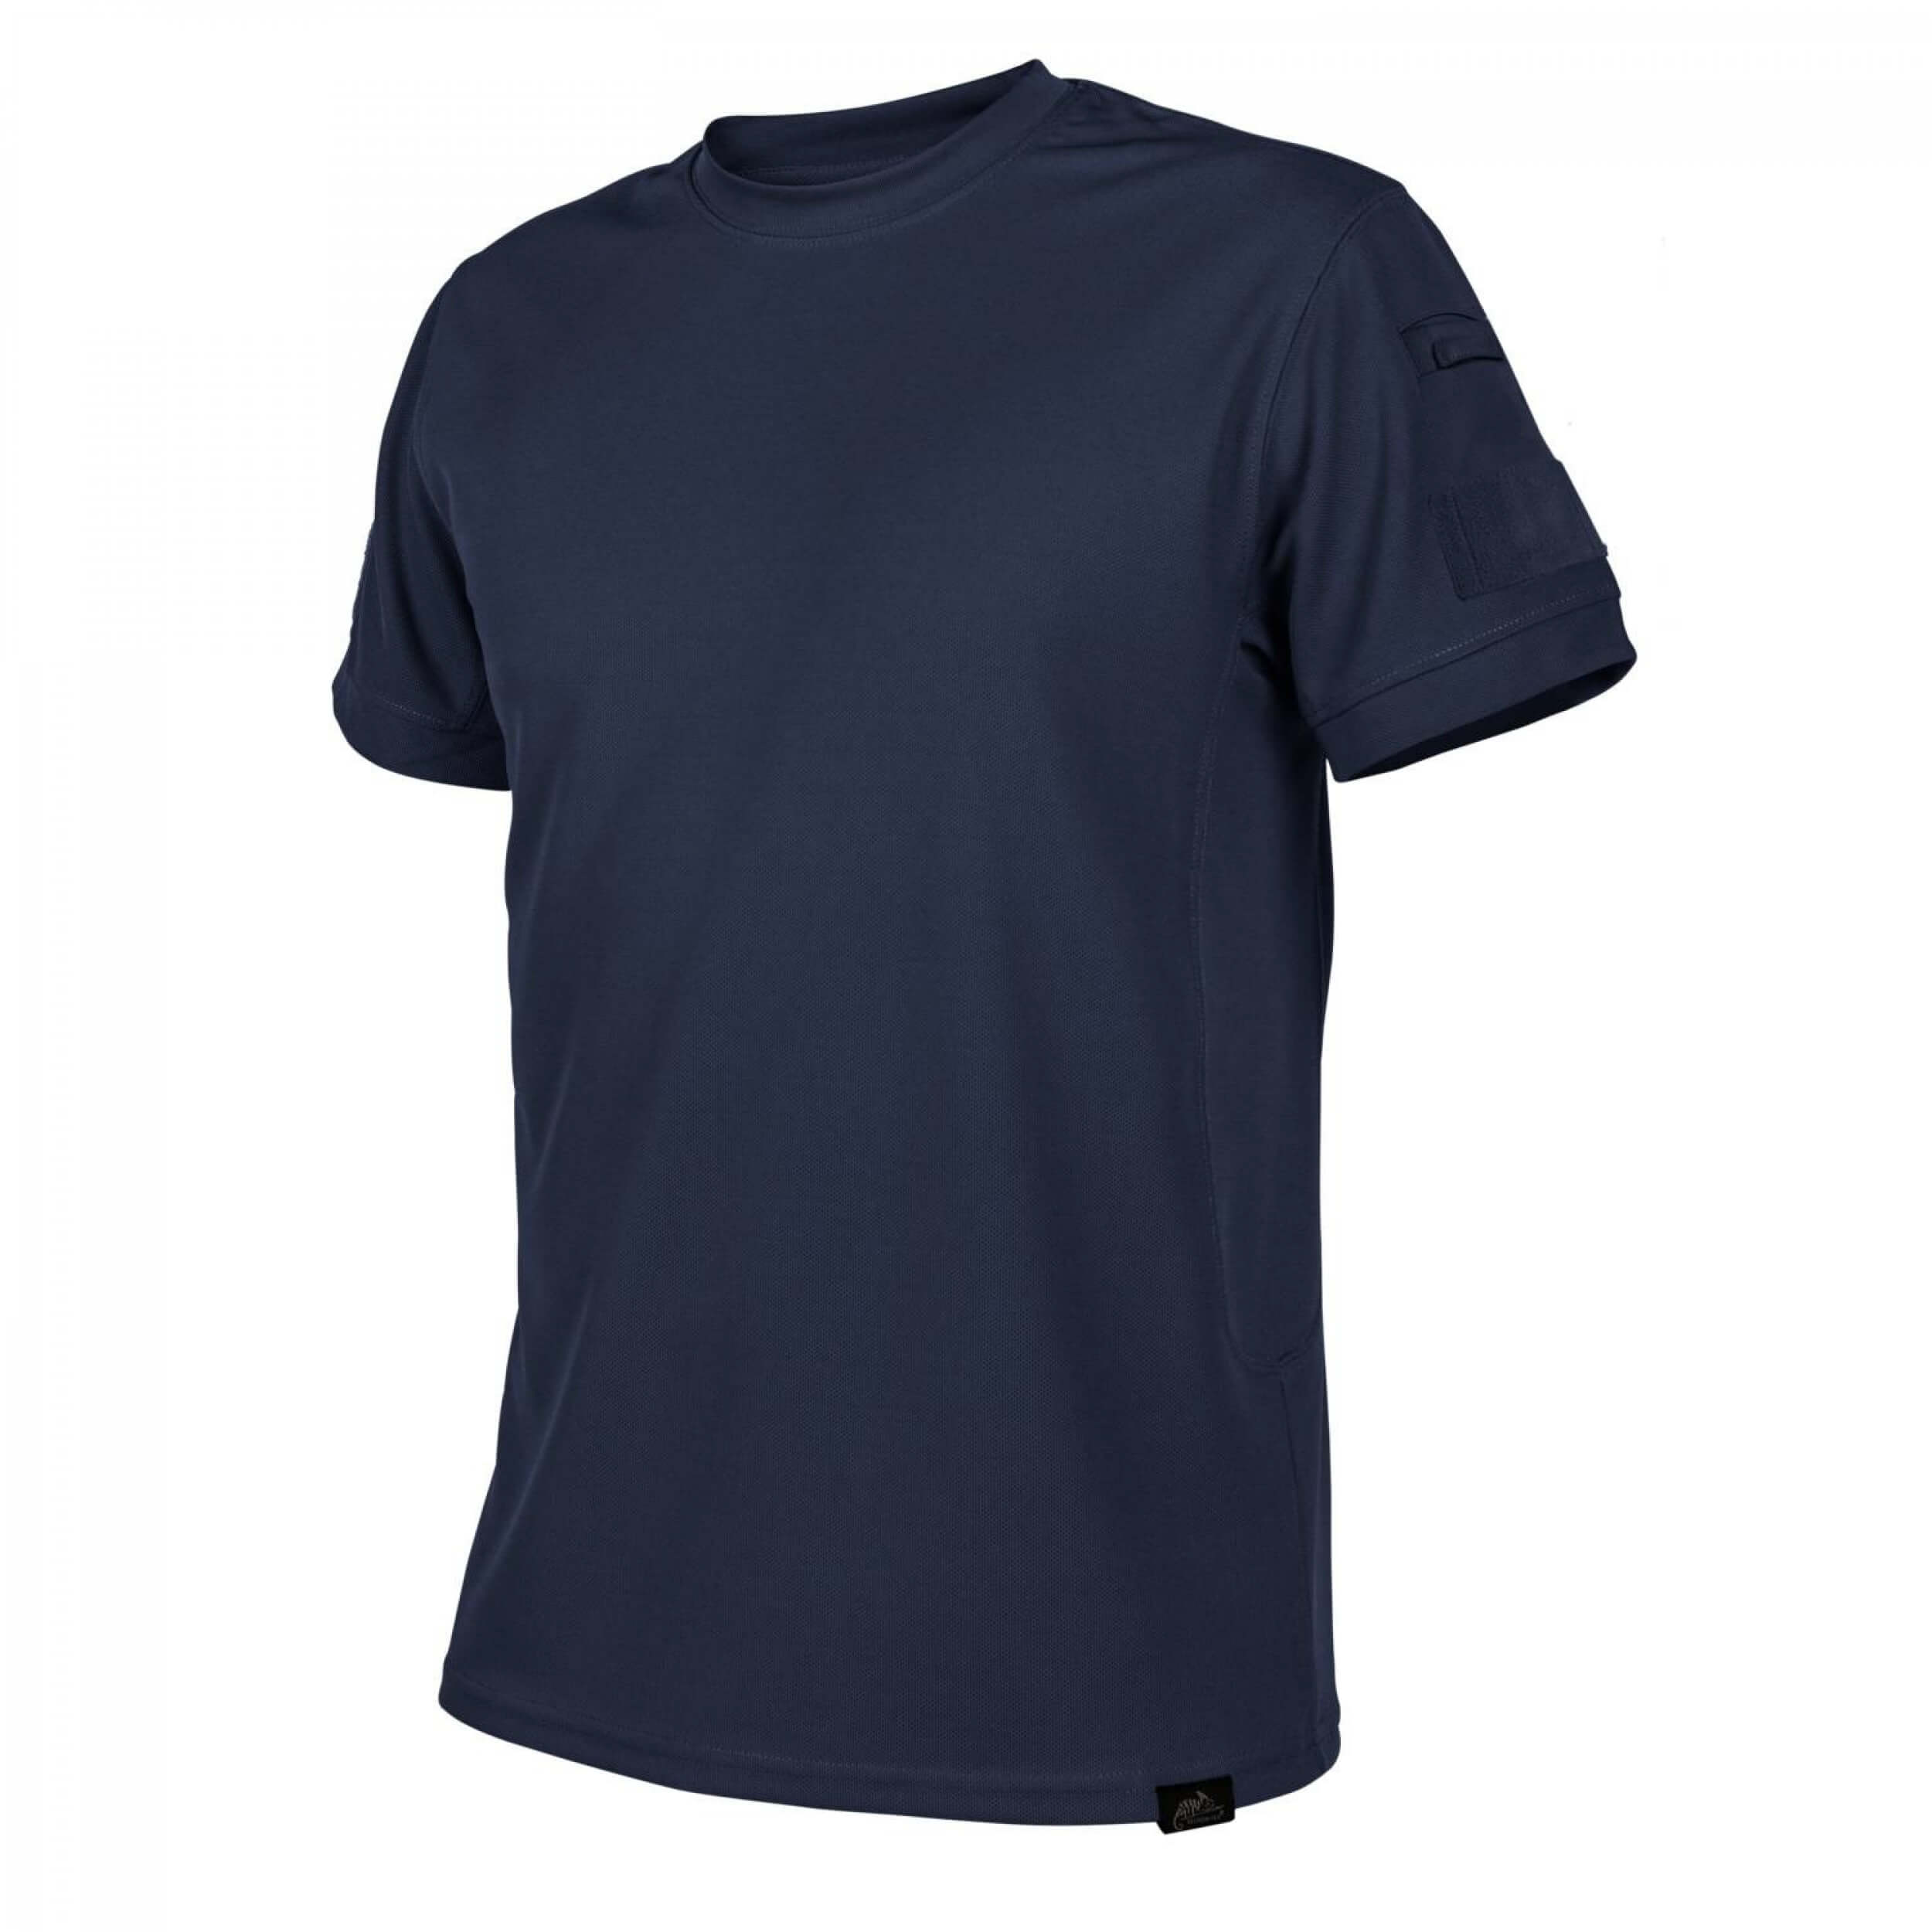 Helikon-Tex TACTICAL T-Shirt - TopCool Lite - Navy Blue